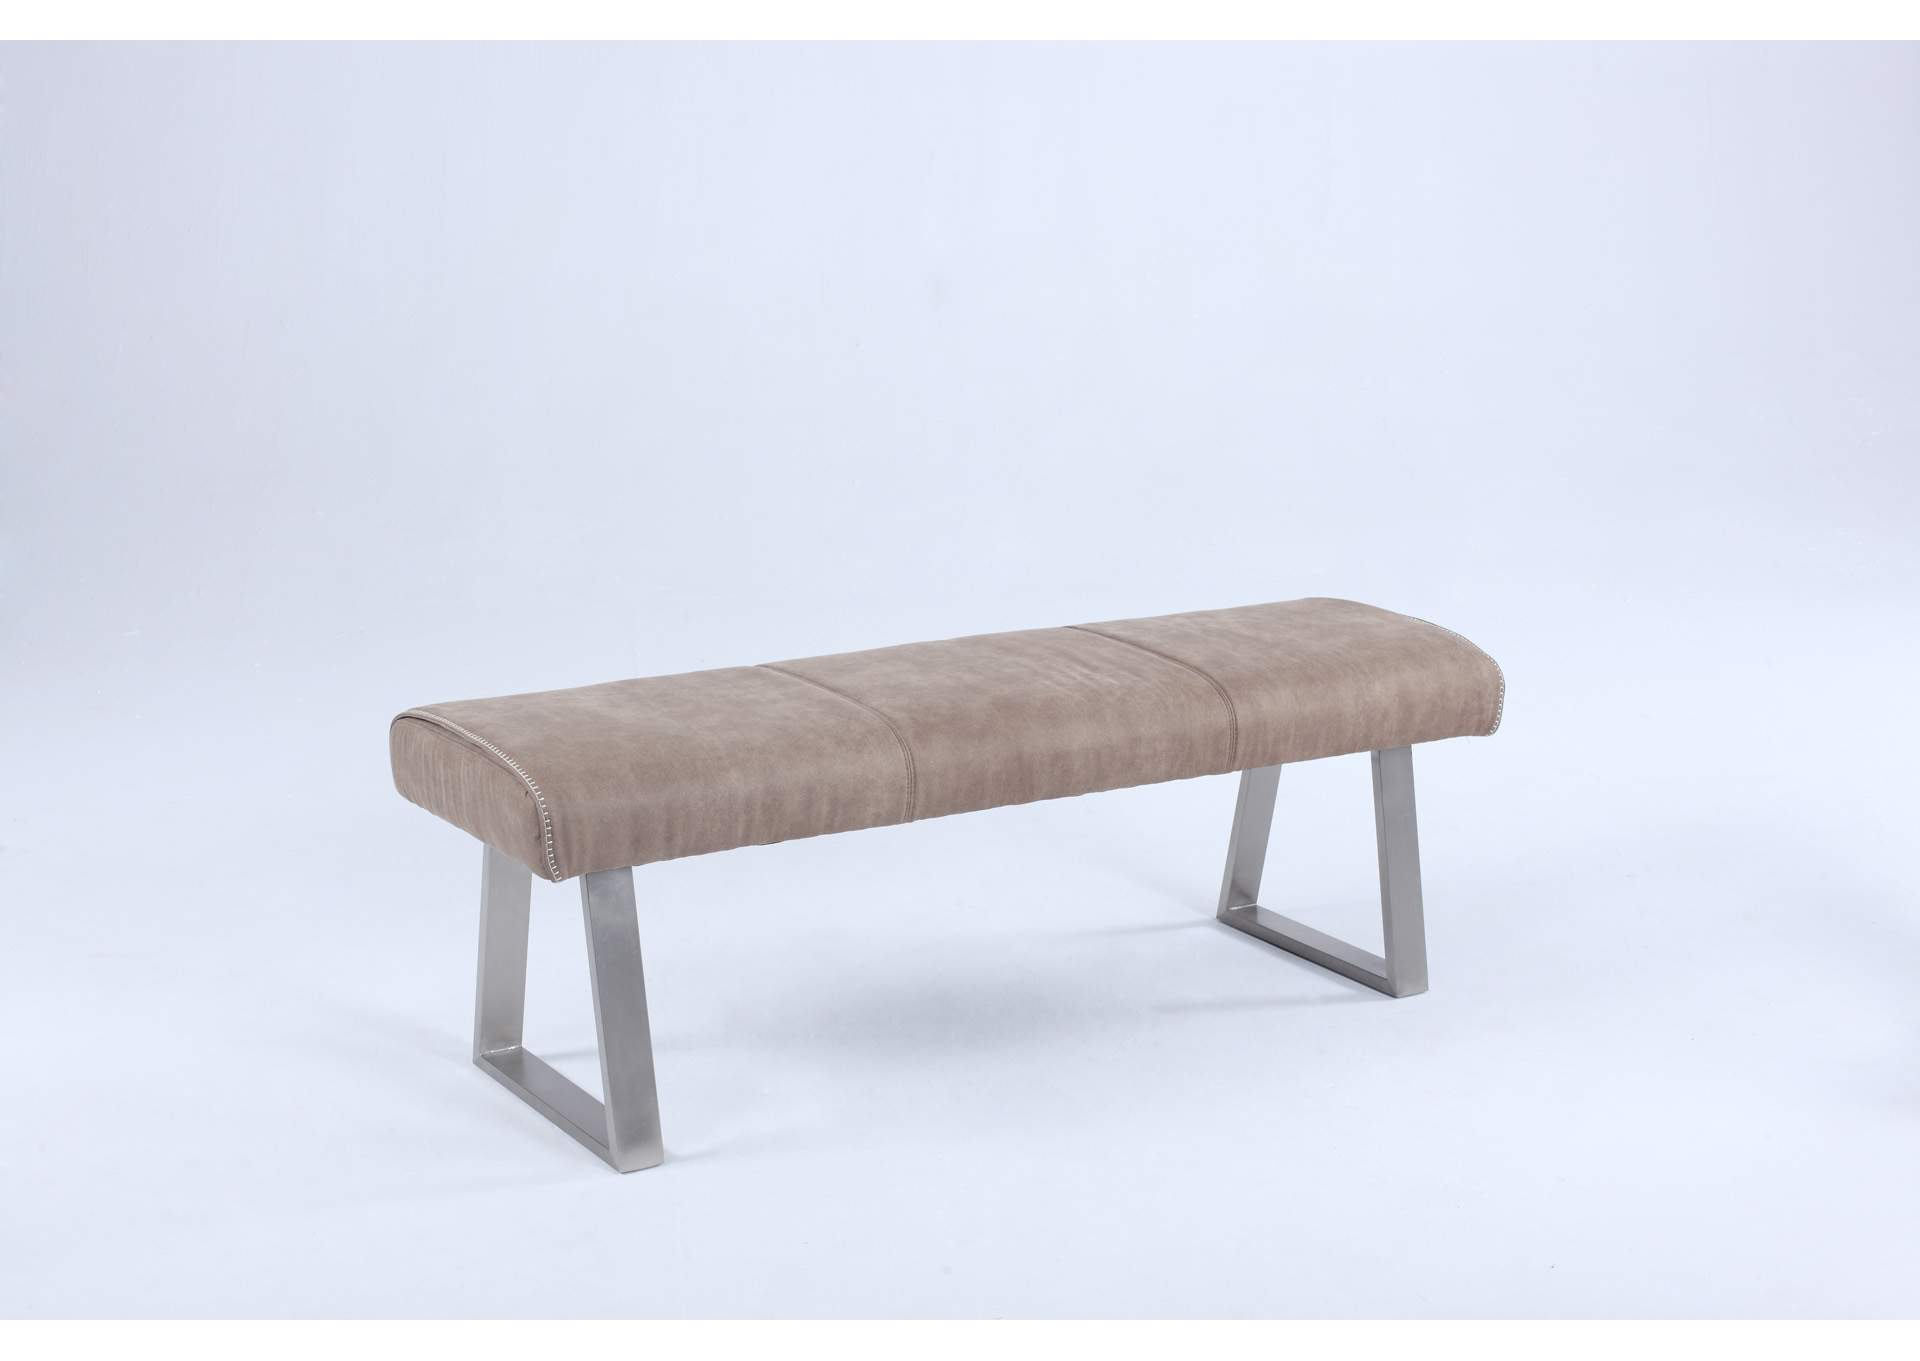 Kalinda Grey Bench with Highlight Stitching,Chintaly Imports